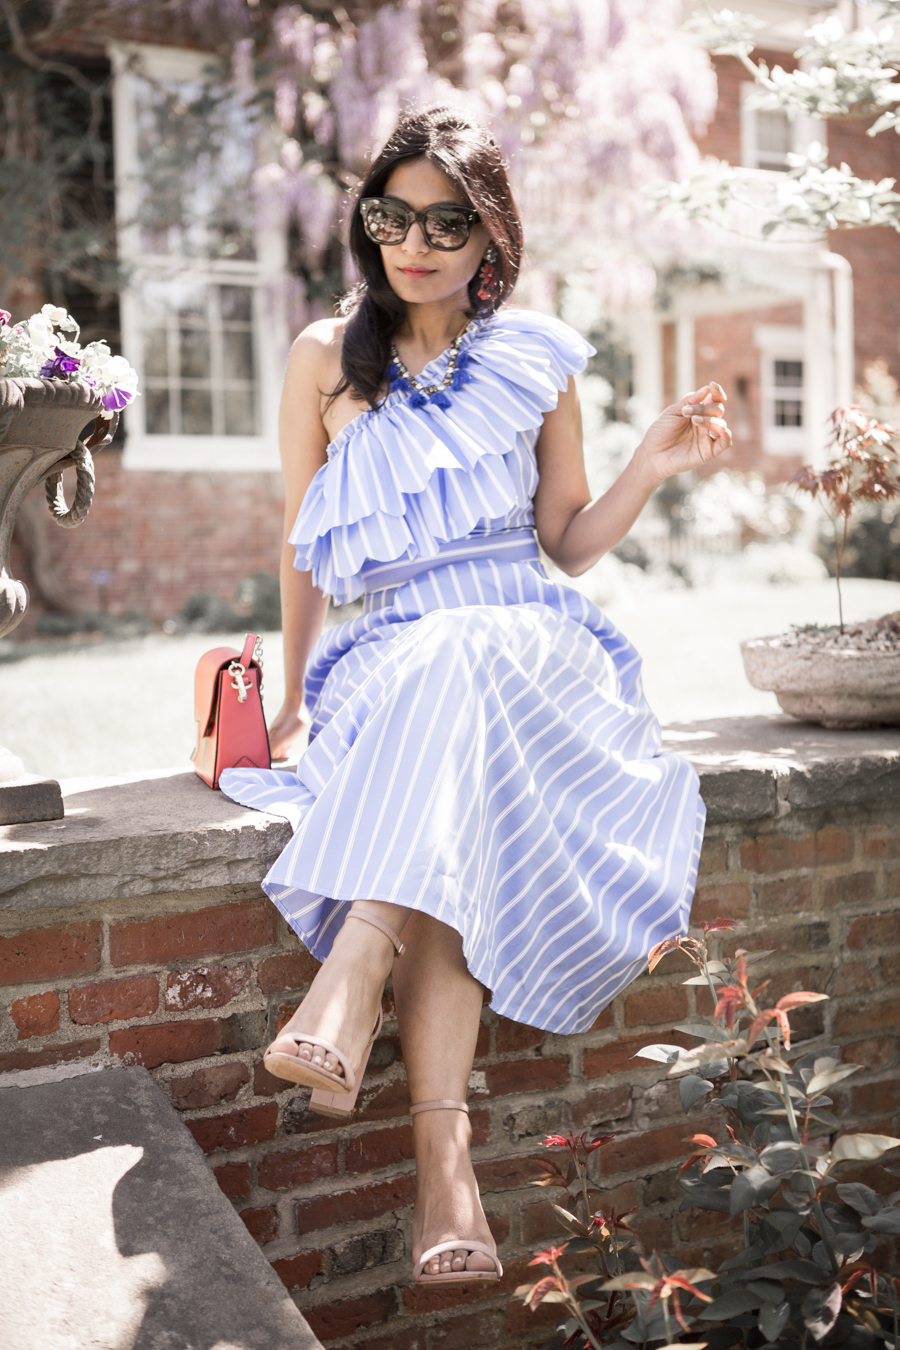 garden party, memorial day dress, new england estates, what to wear, nordstrom sale picks, shein, off the shoulder, ruffles, feminine, j.crew factory, ann taylor, vince camuto, nude heels, fashion blogger, petite blogger, 40 plus fashion, occasion wear, wedding guest dress